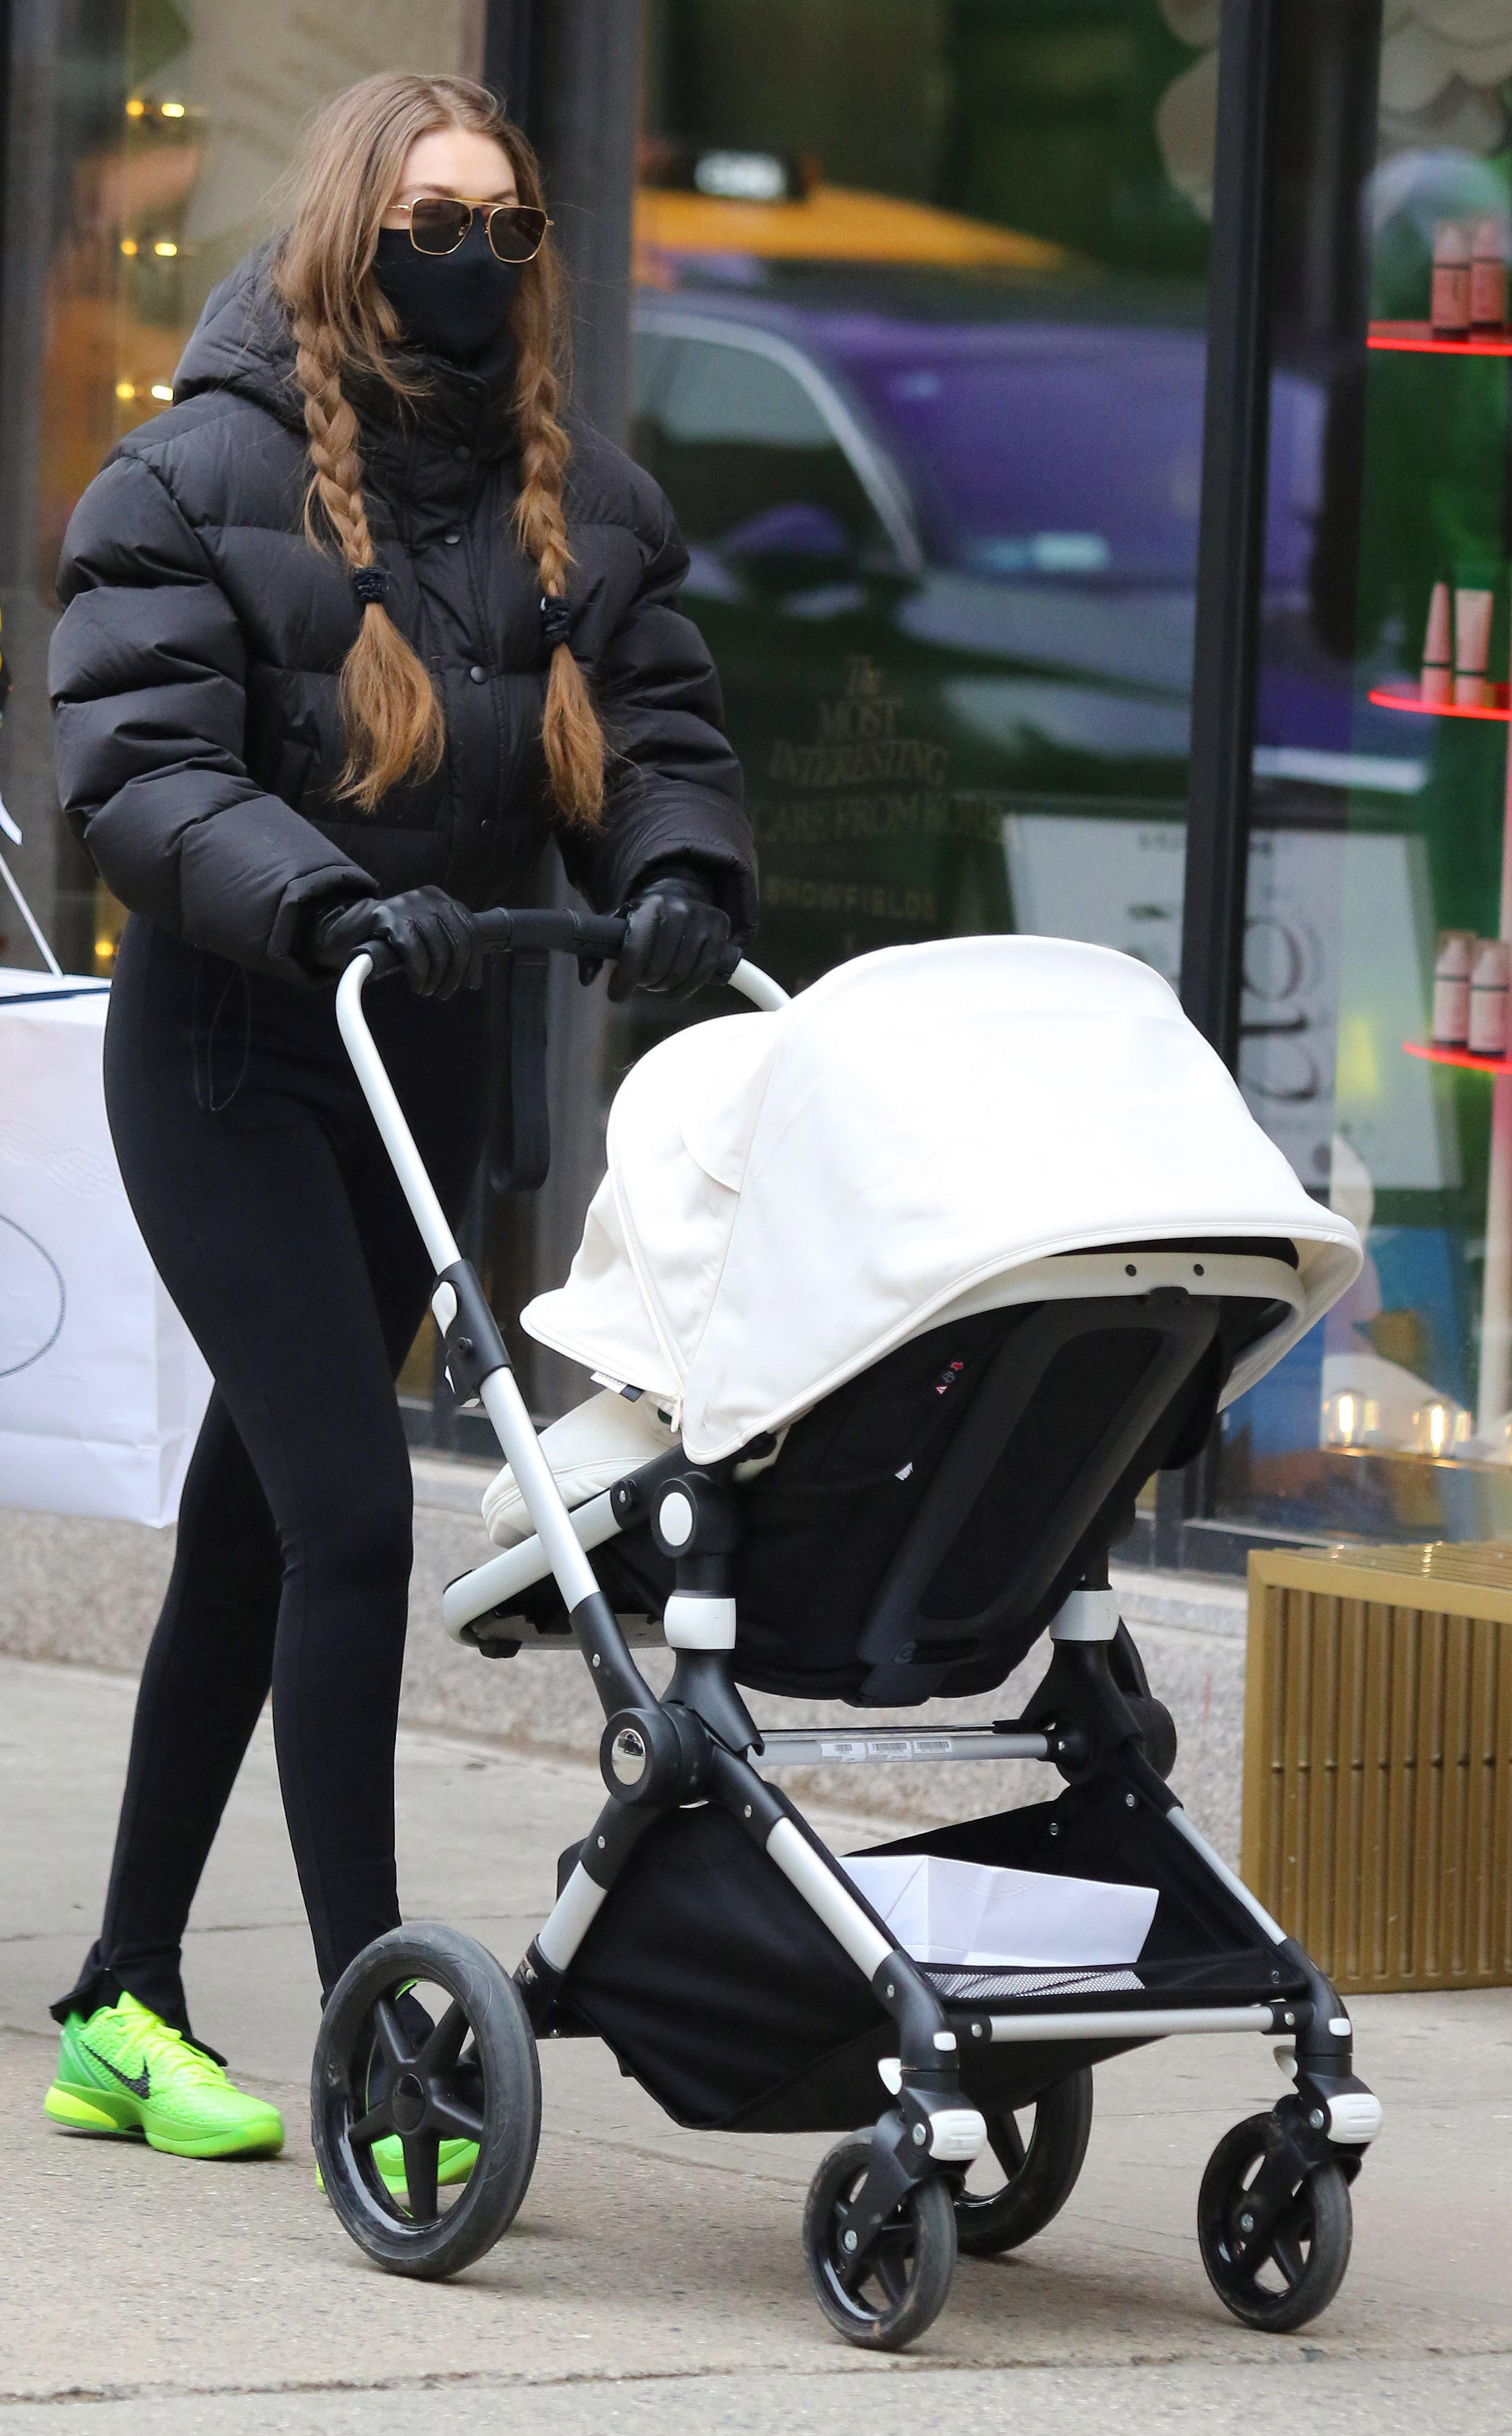 Gigi Hadid wears spandex and a puffy jacket while out with baby daughter around Manhattan's Soho area. 11 Jan 2021 Pictured: Gigi Hadid. Photo credit: LRNYC / MEGA TheMegaAgency.com +1 888 505 6342 (Mega Agency TagID: MEGA725870_002.jpg) [Photo via Mega Agency]